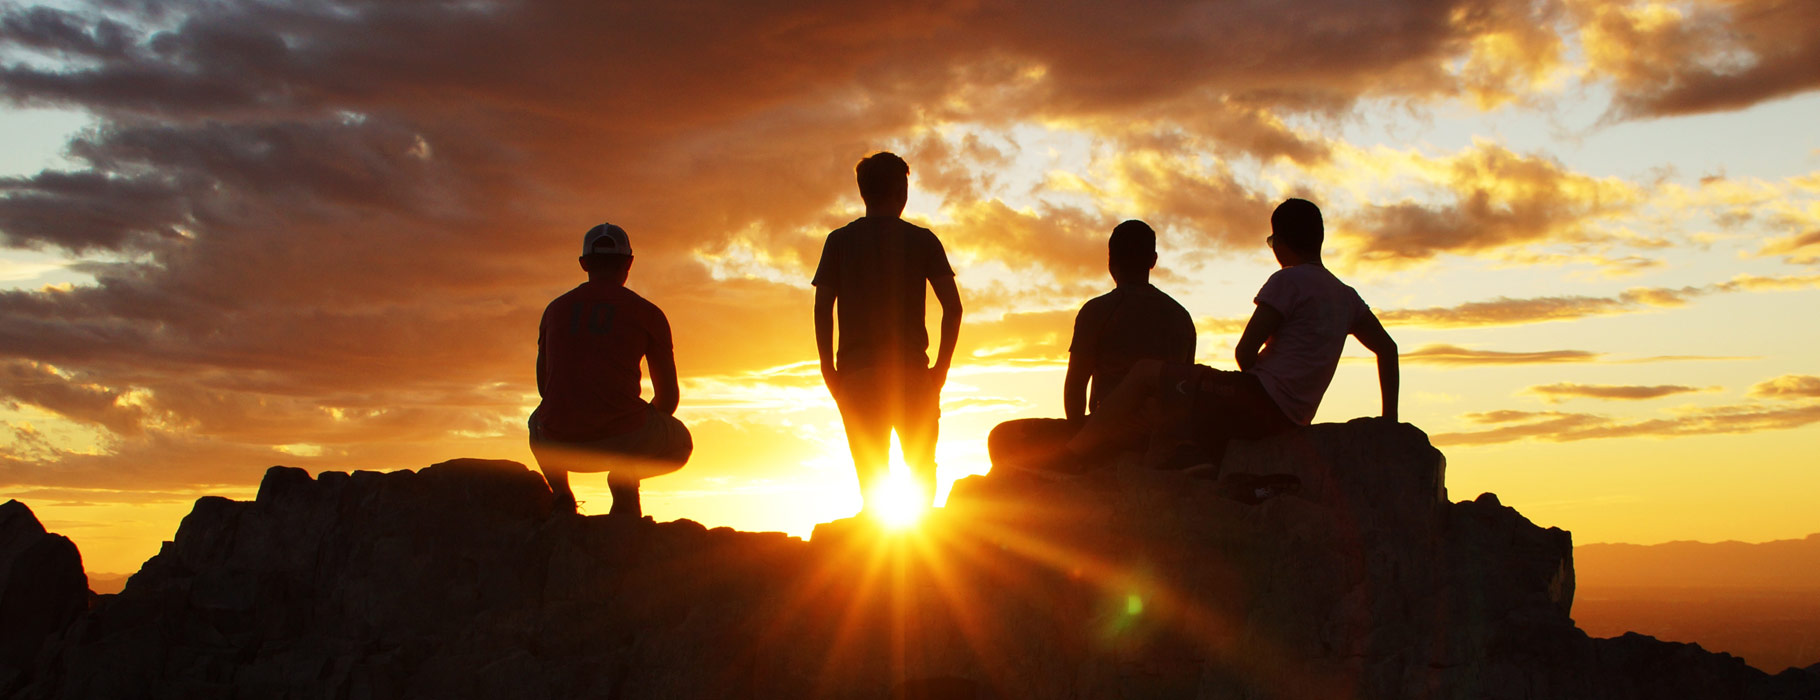 Four people watching the sunset from the top of a rock